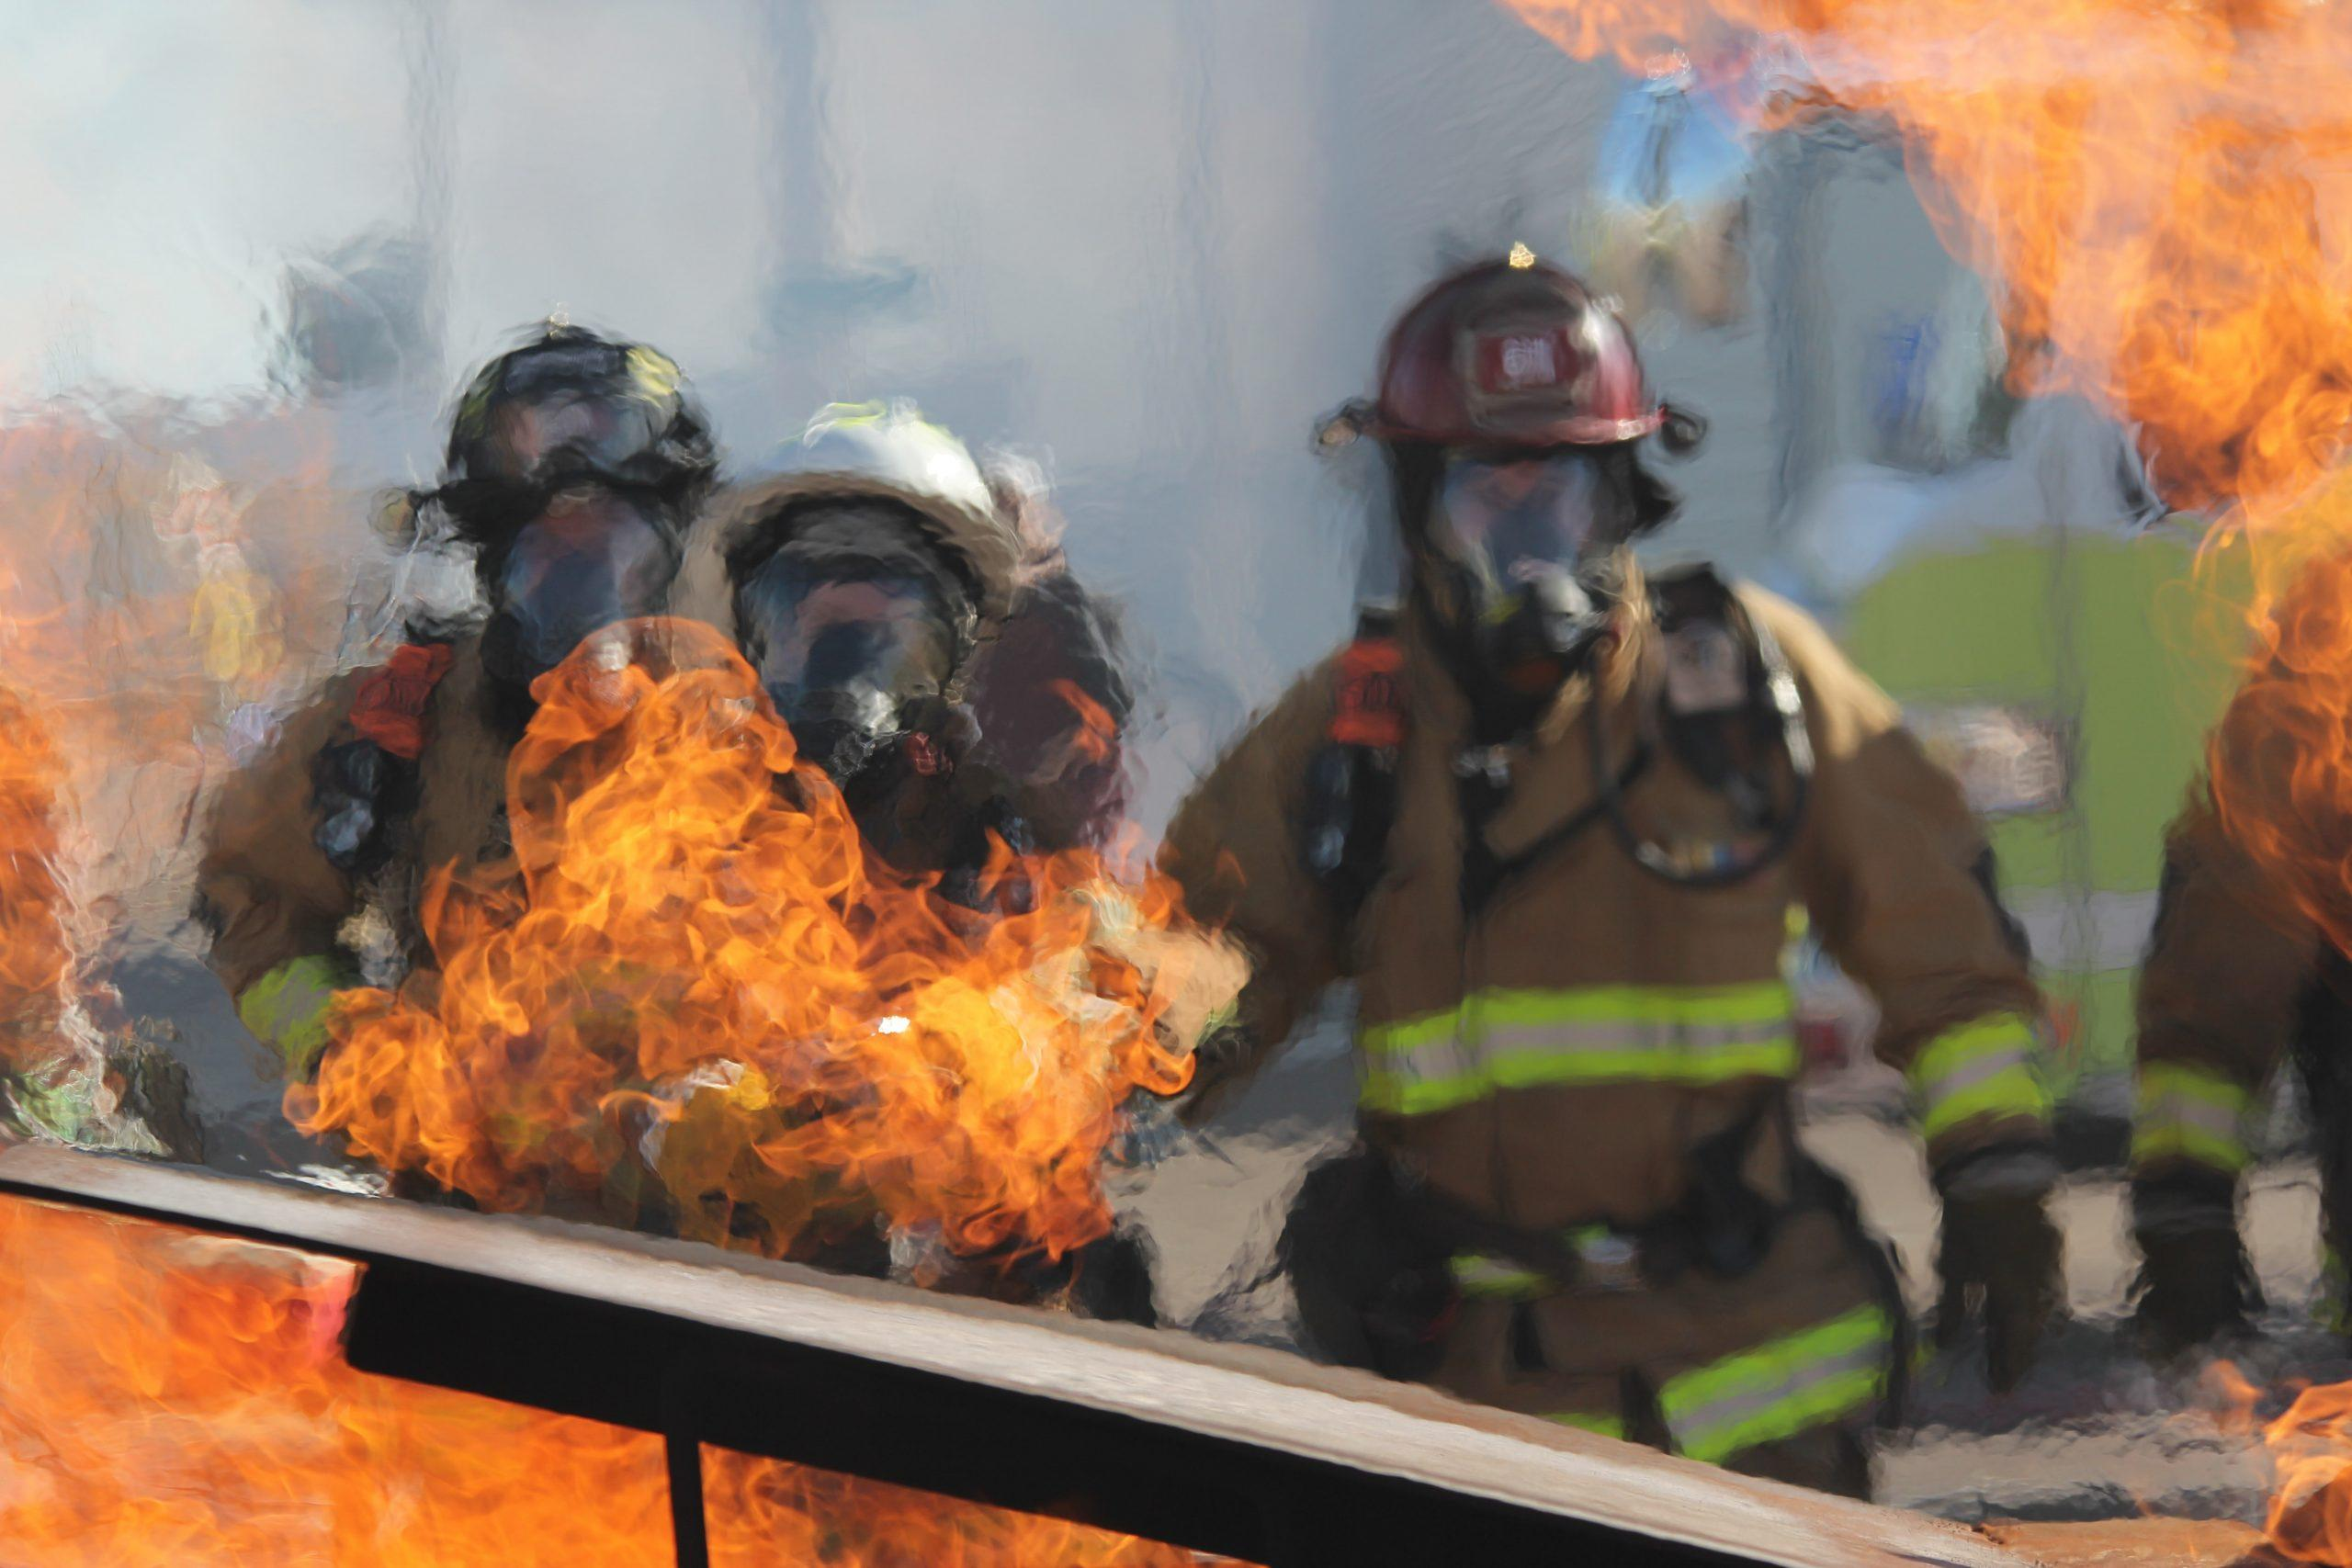 A team of firefighters drill on a training fire.